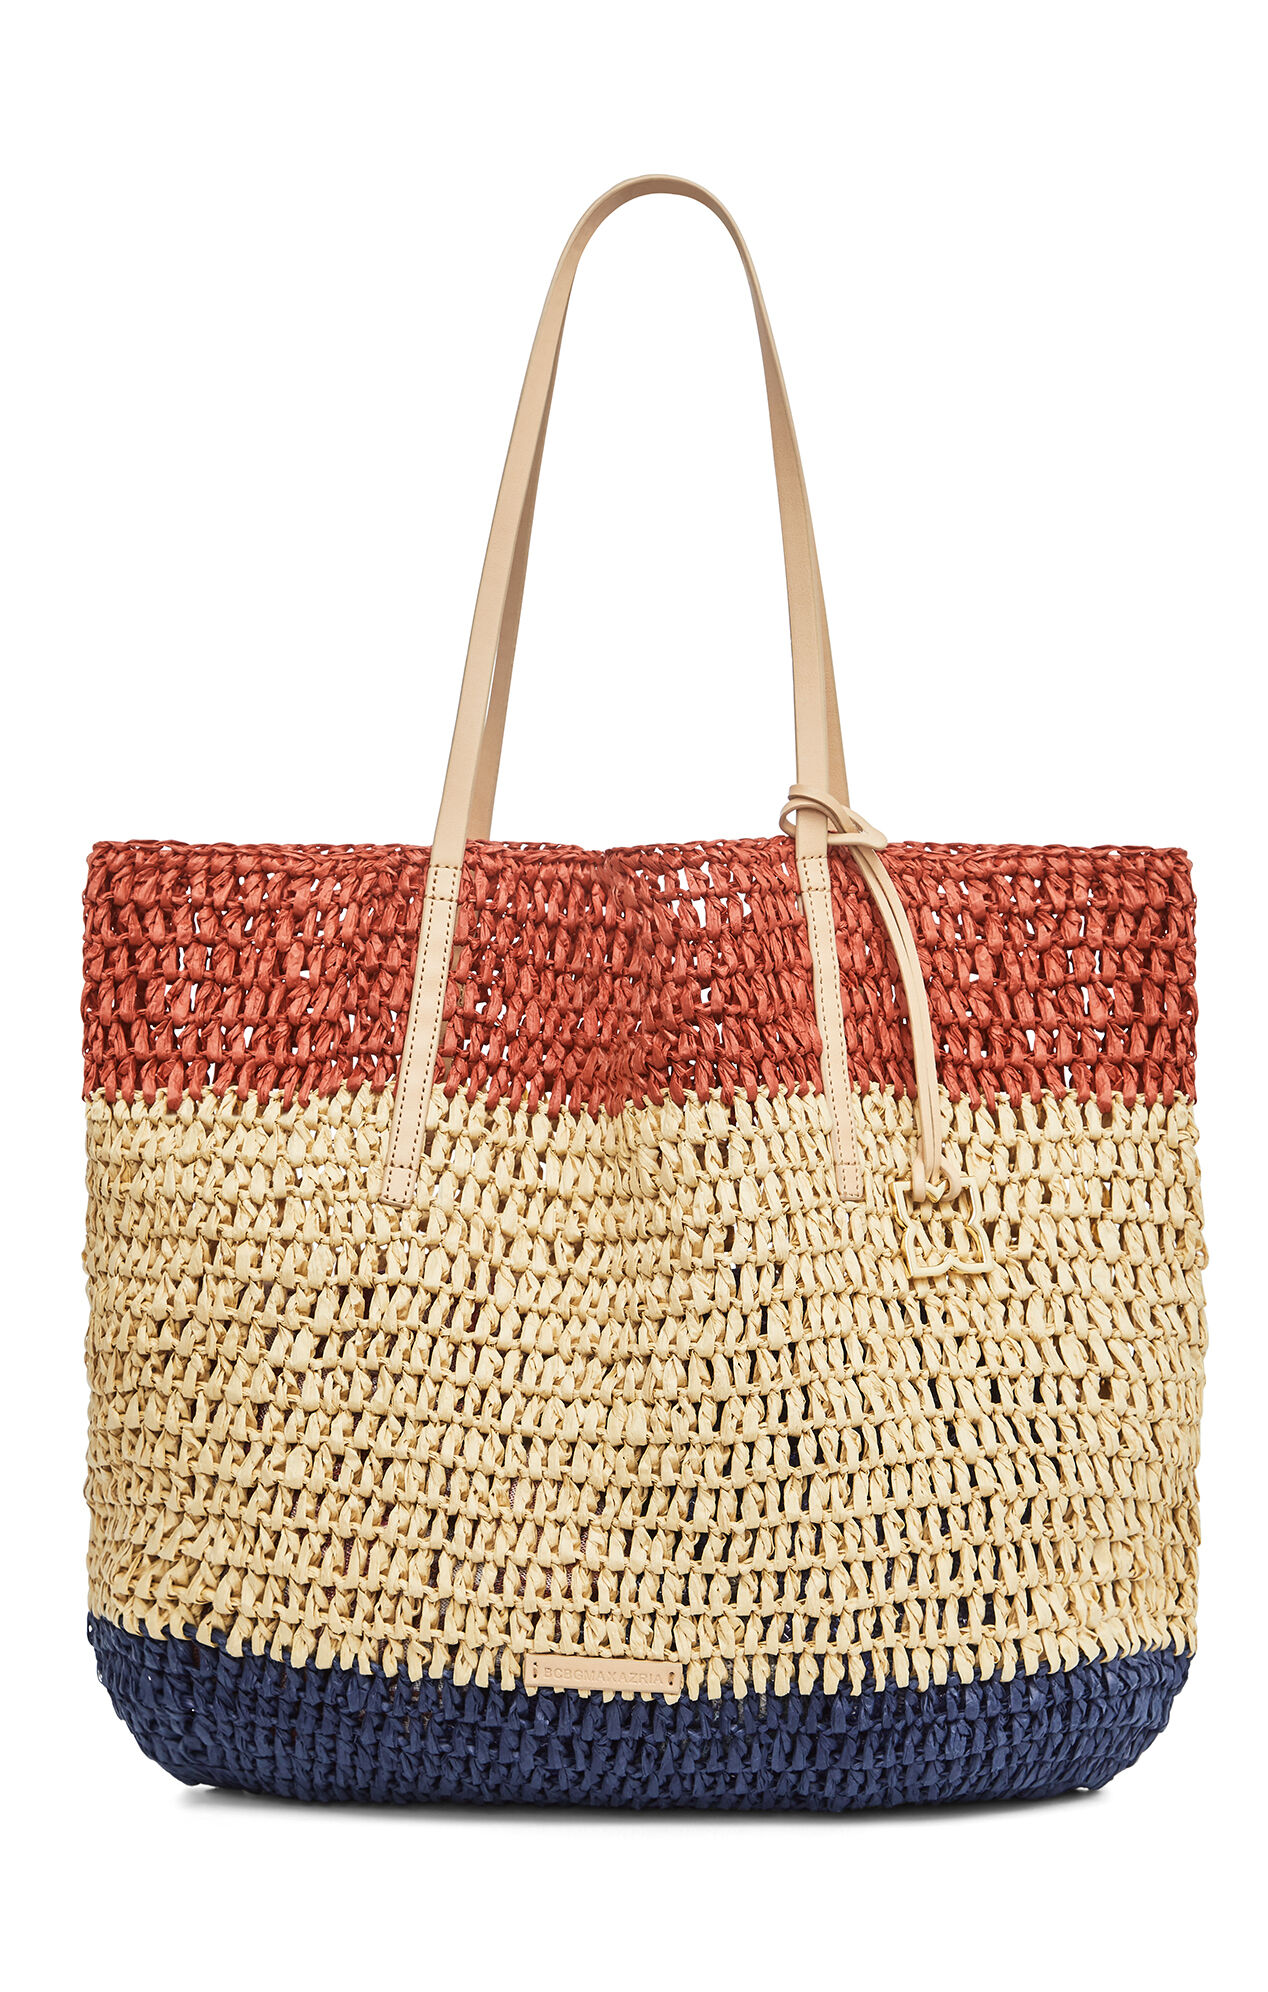 North-South Tote